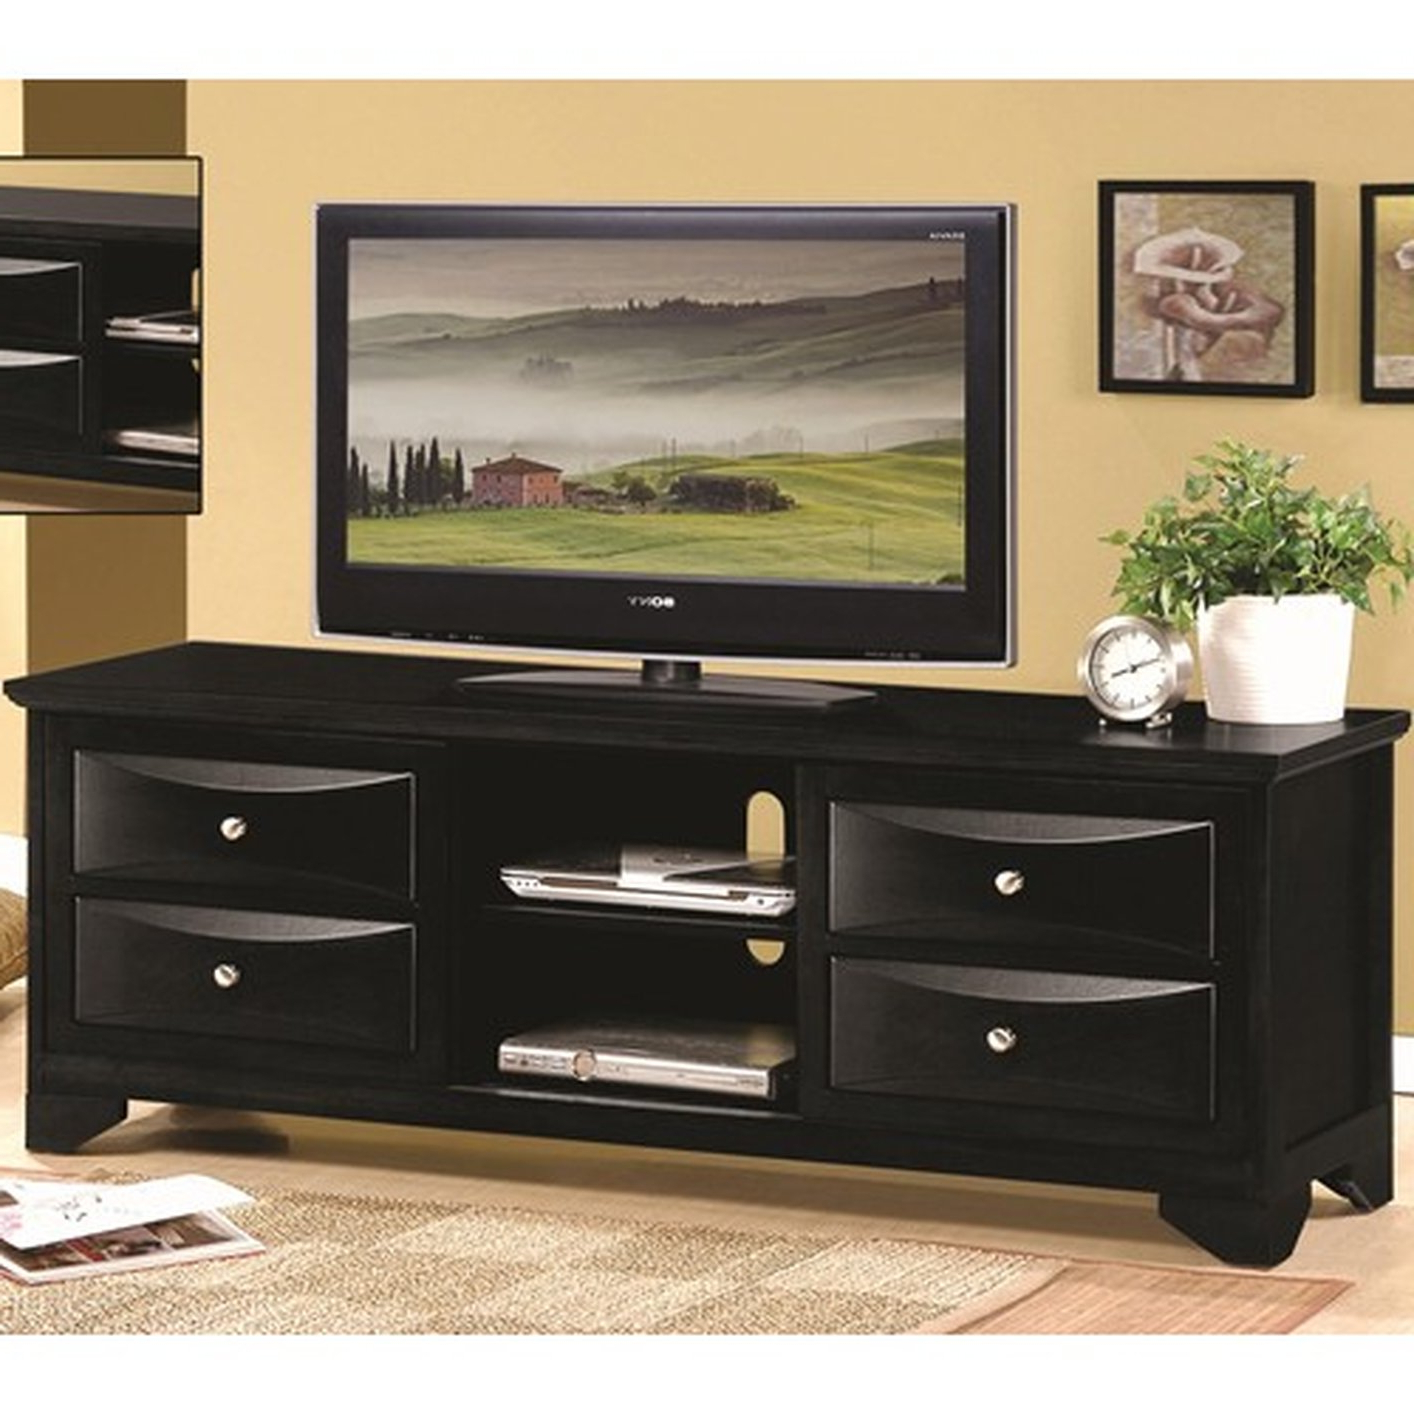 Black Wood Tv Stand – Steal A Sofa Furniture Outlet Los Angeles Ca Within Favorite Dark Wood Tv Stands (Gallery 13 of 20)